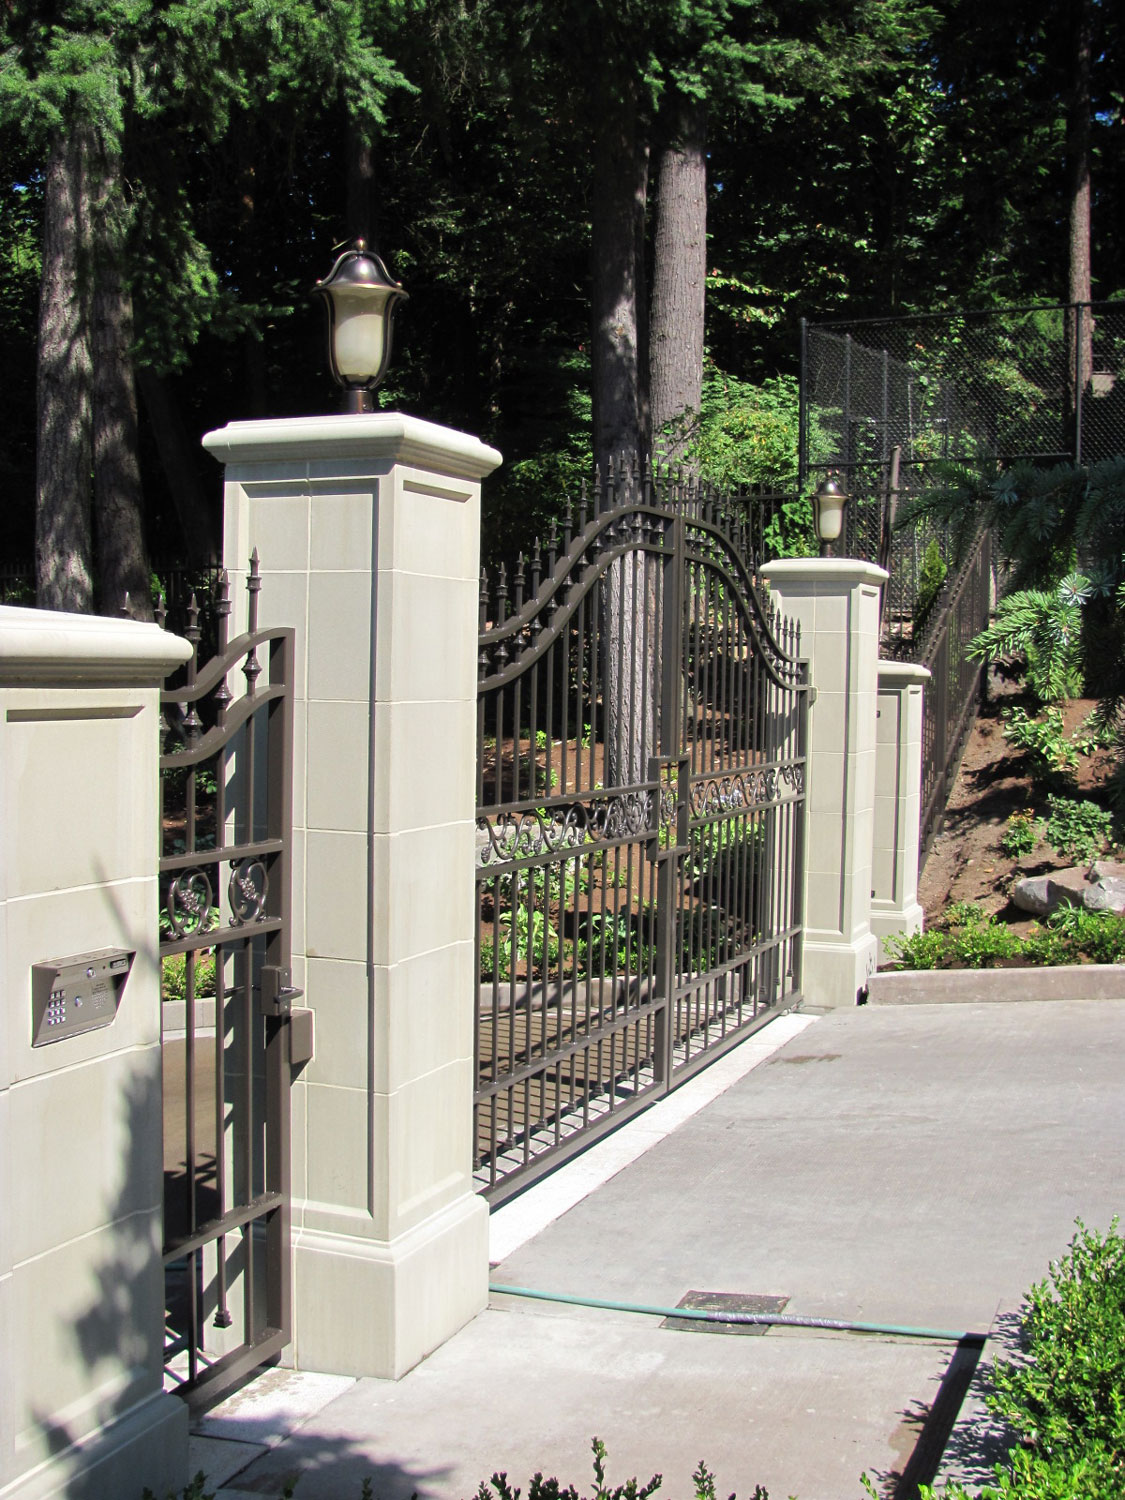 Automatic Gate and Fence - Side Gate - Seattle, WA